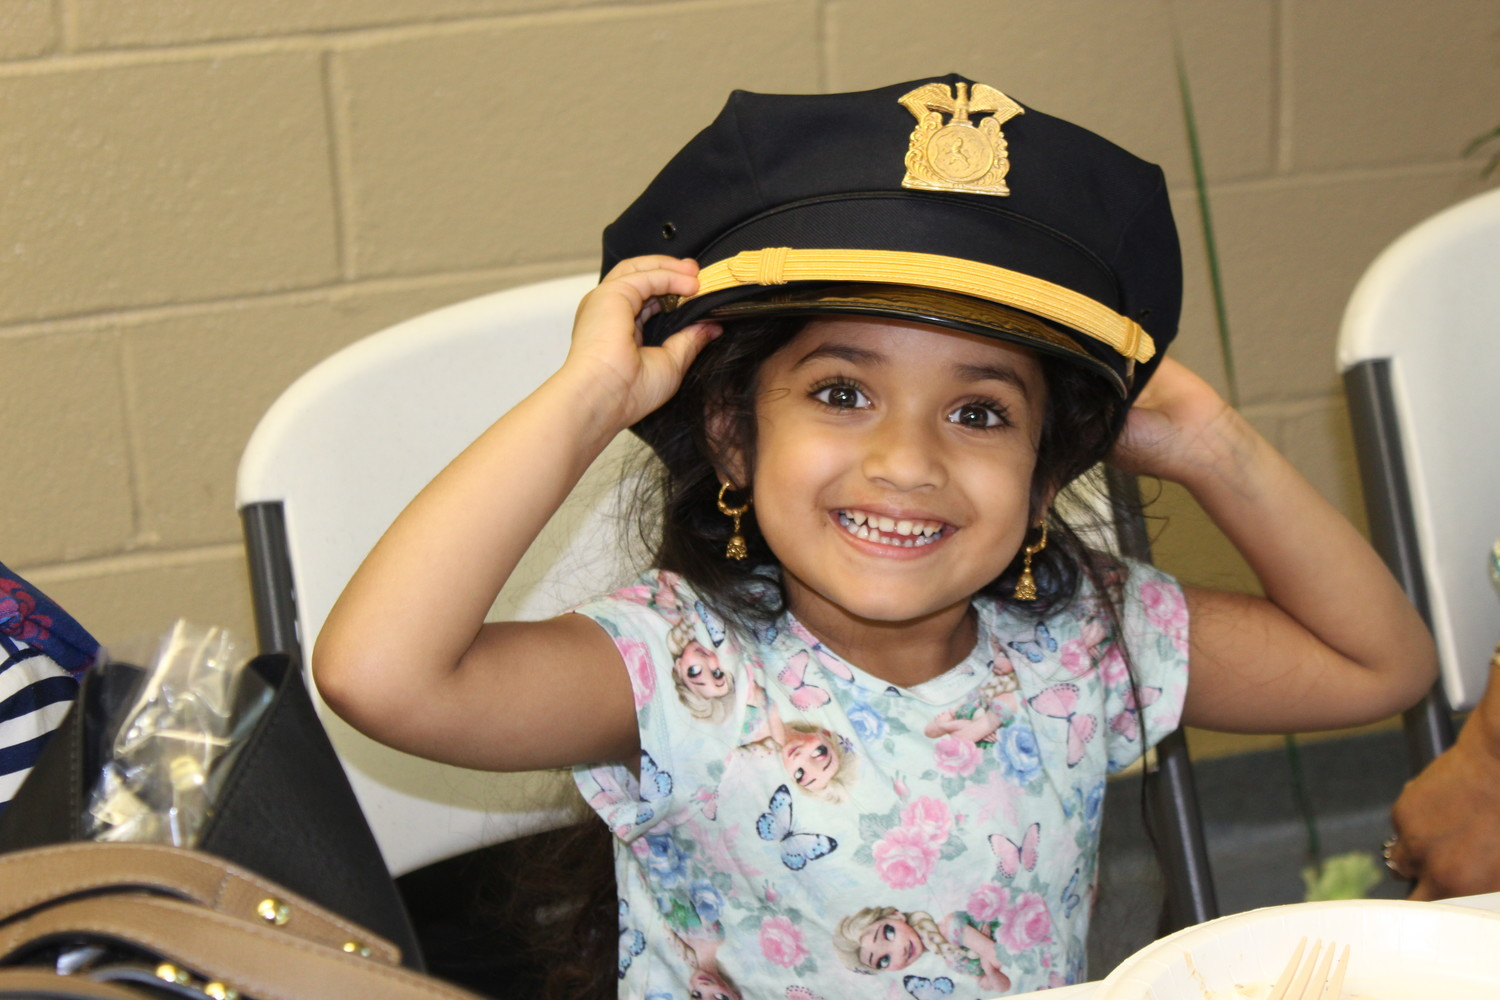 Layla Khan, 4, at left, donned her grandfather's auxiliary police hat.